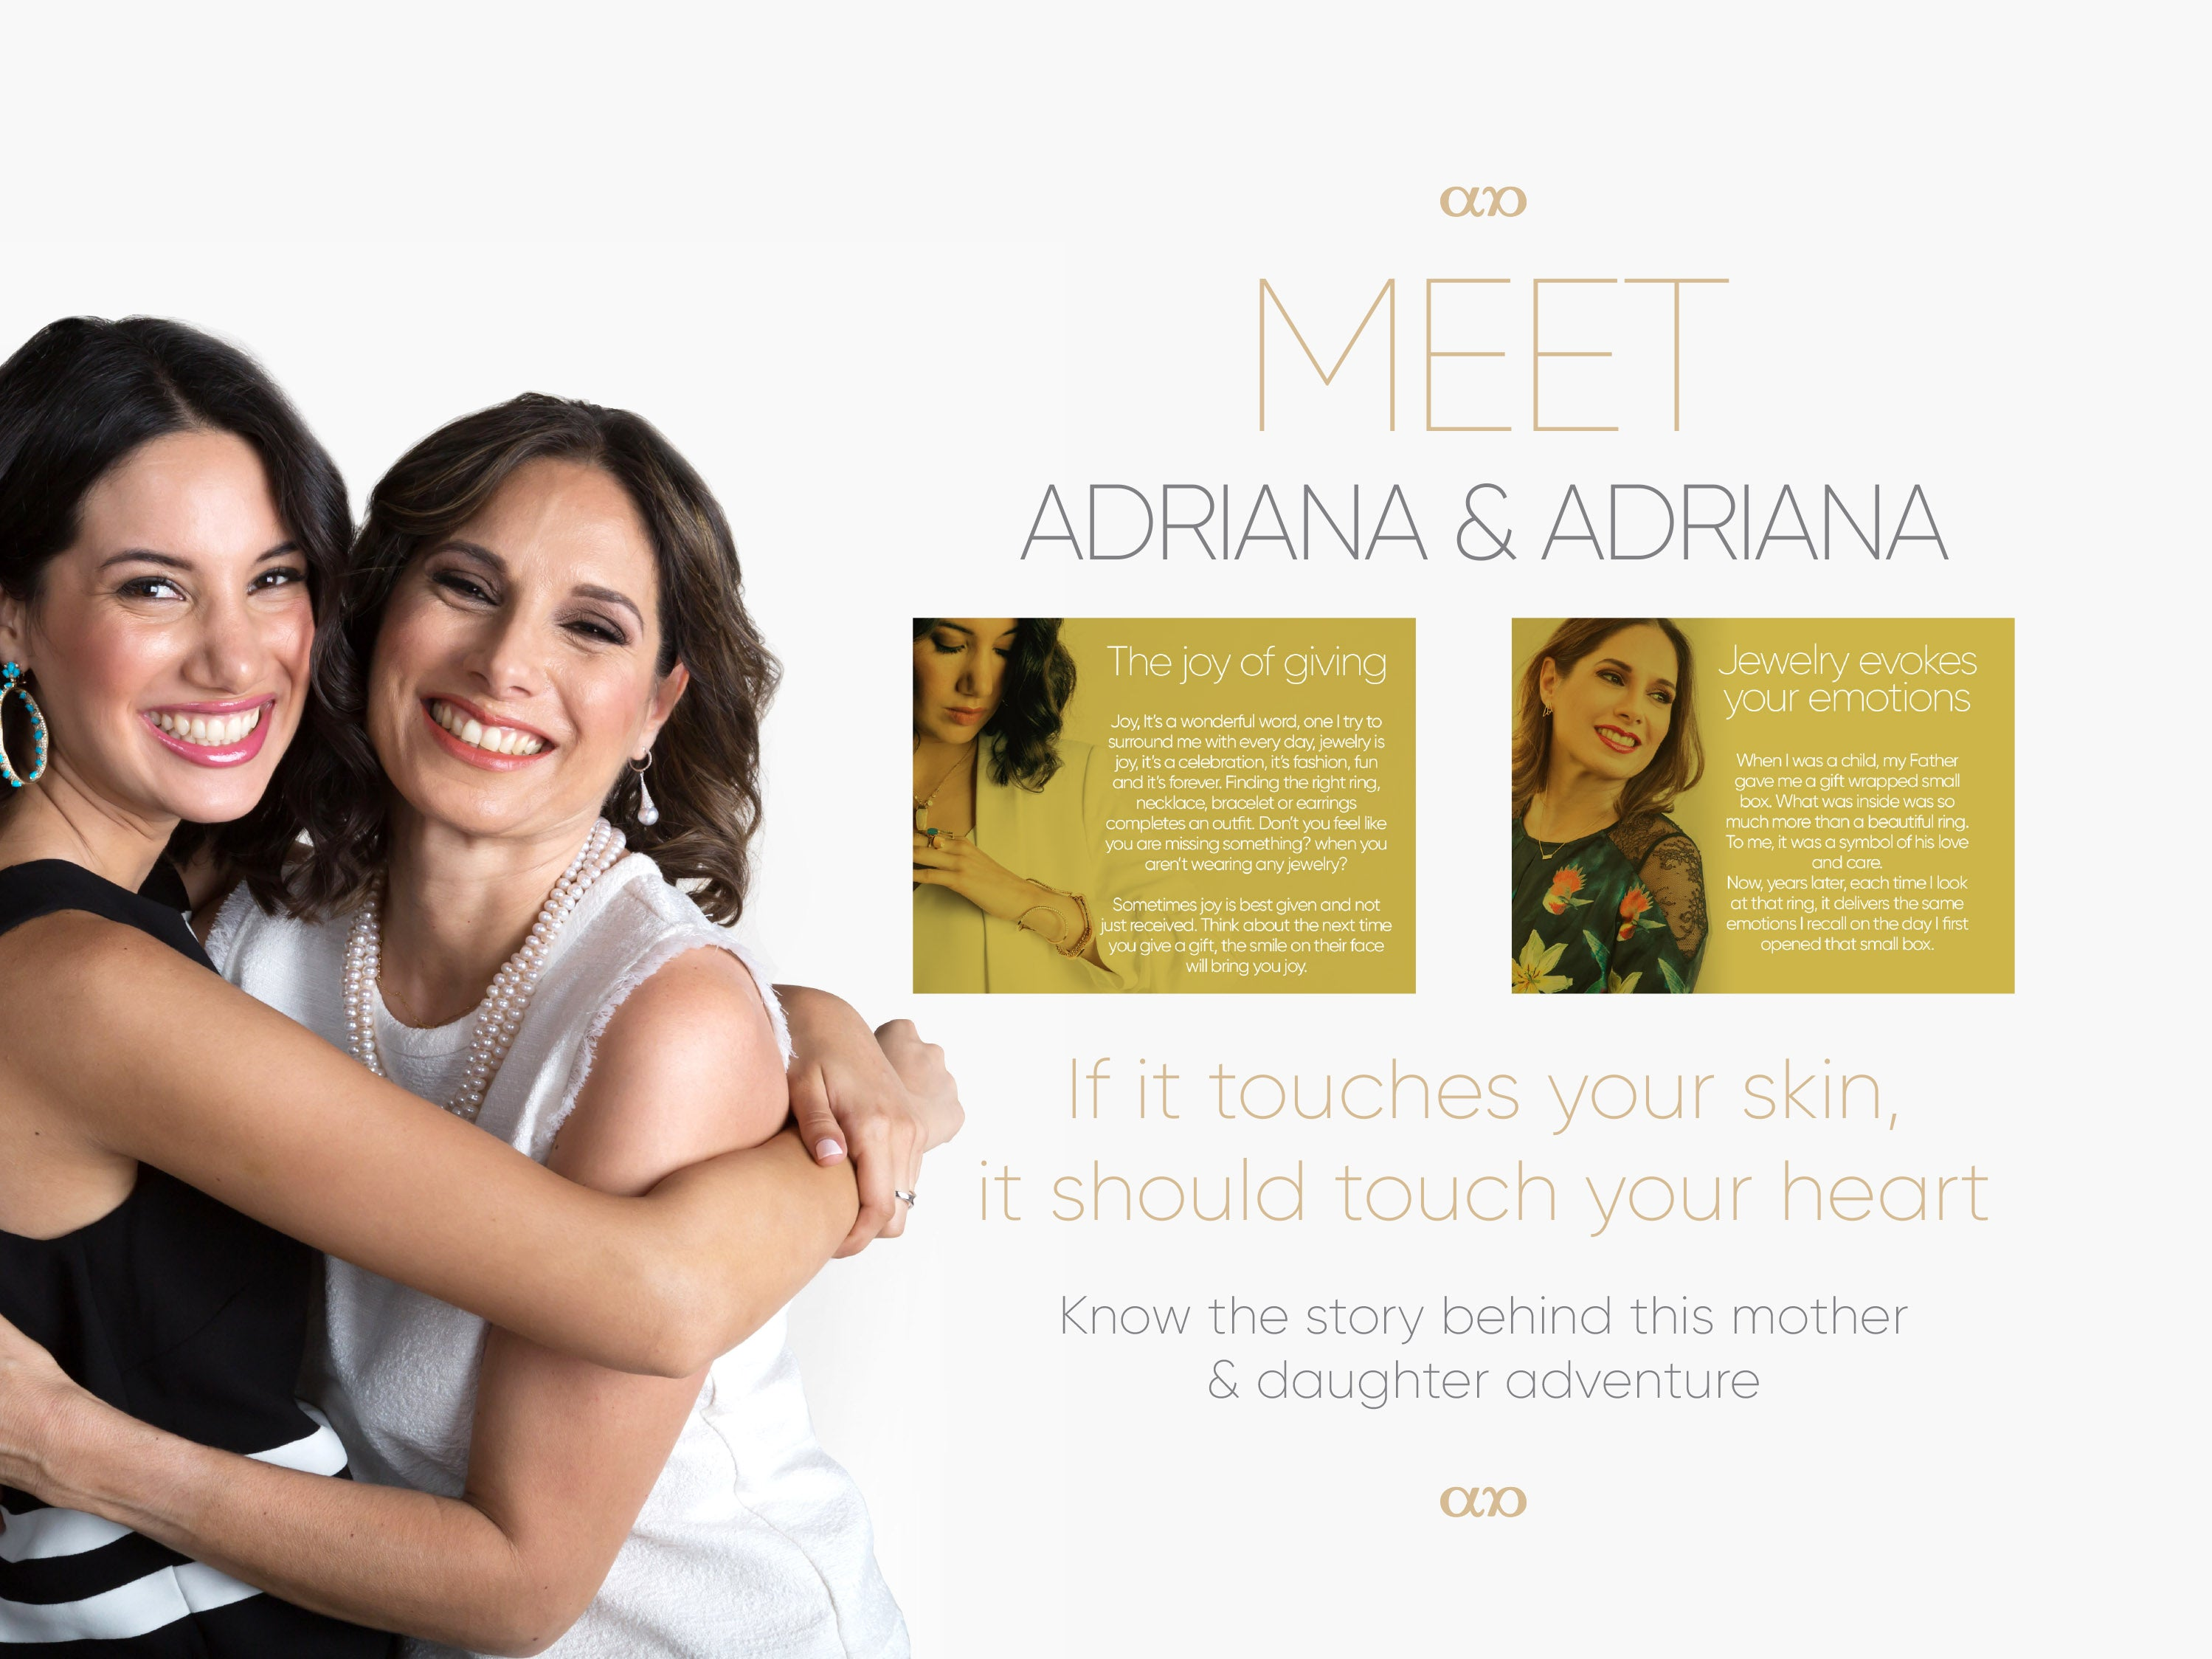 Meet Adriana & Adriana - If it touches your skin, it should touch your heart - Know the story behind this mother and daughter adventure